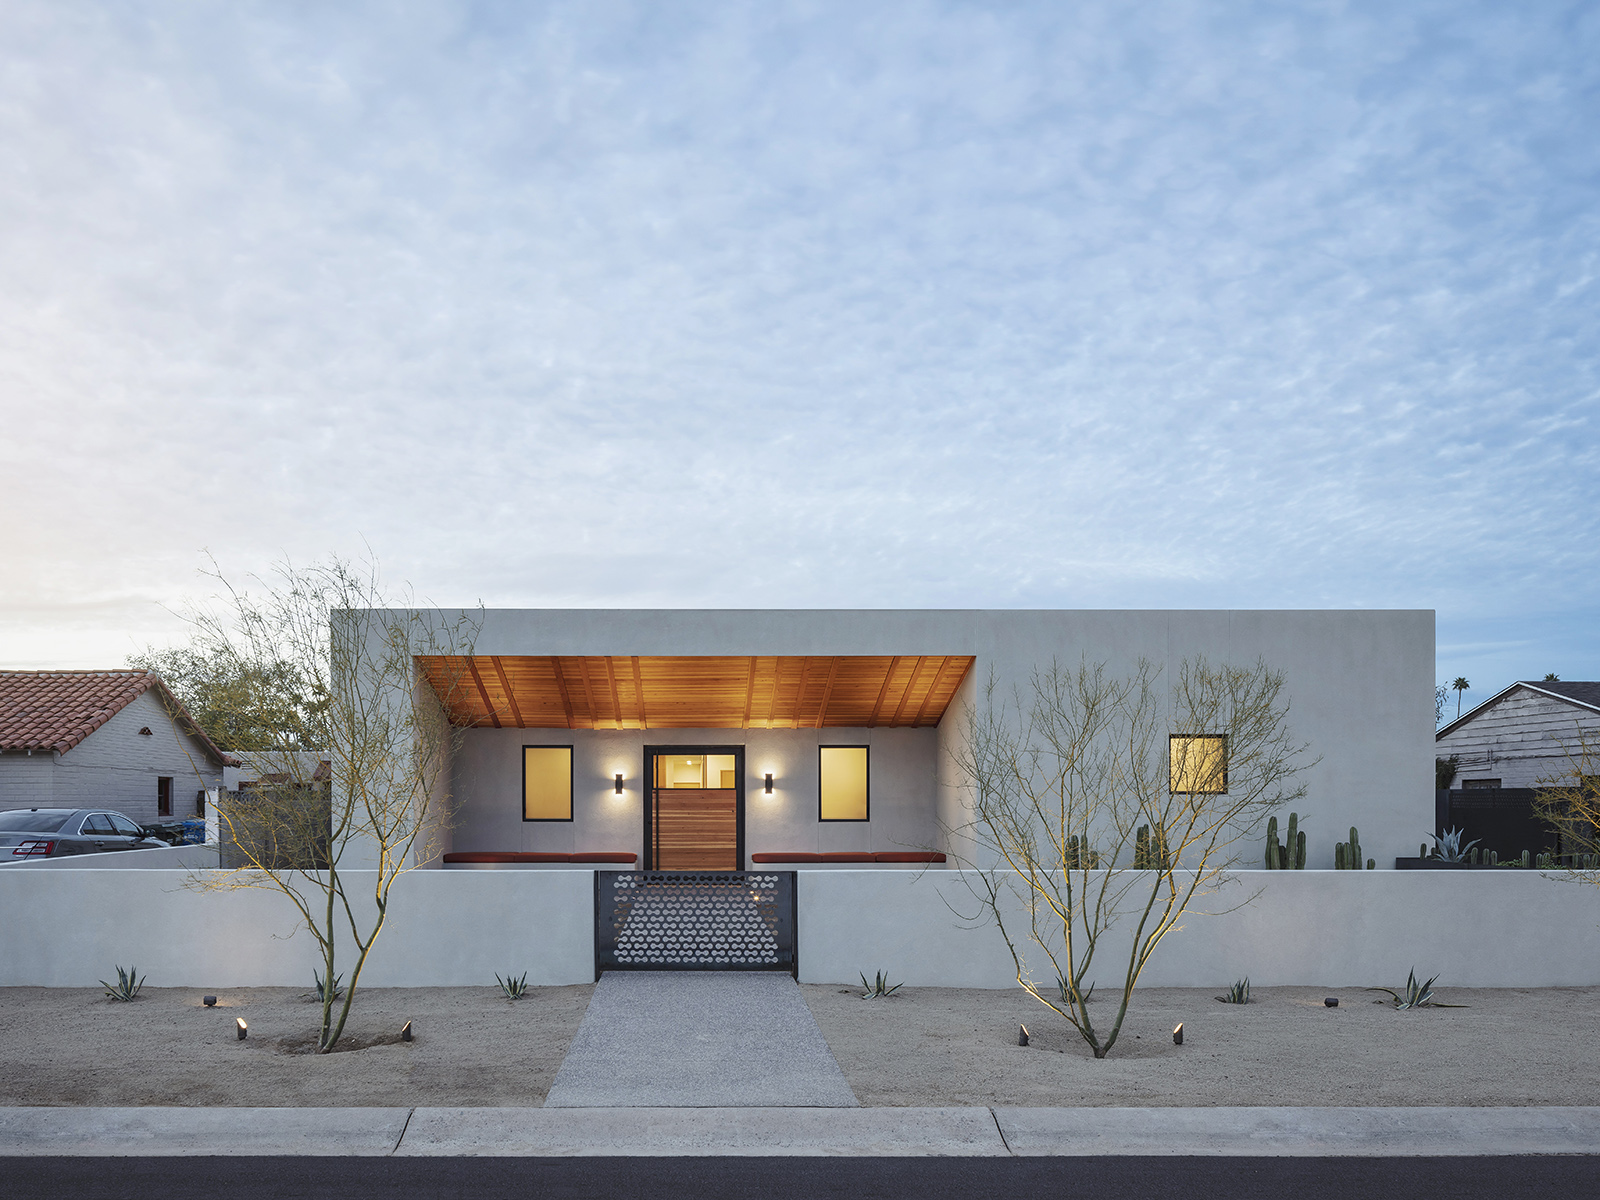 A modern desert home inspired by Georgia O'Keeffe paintings